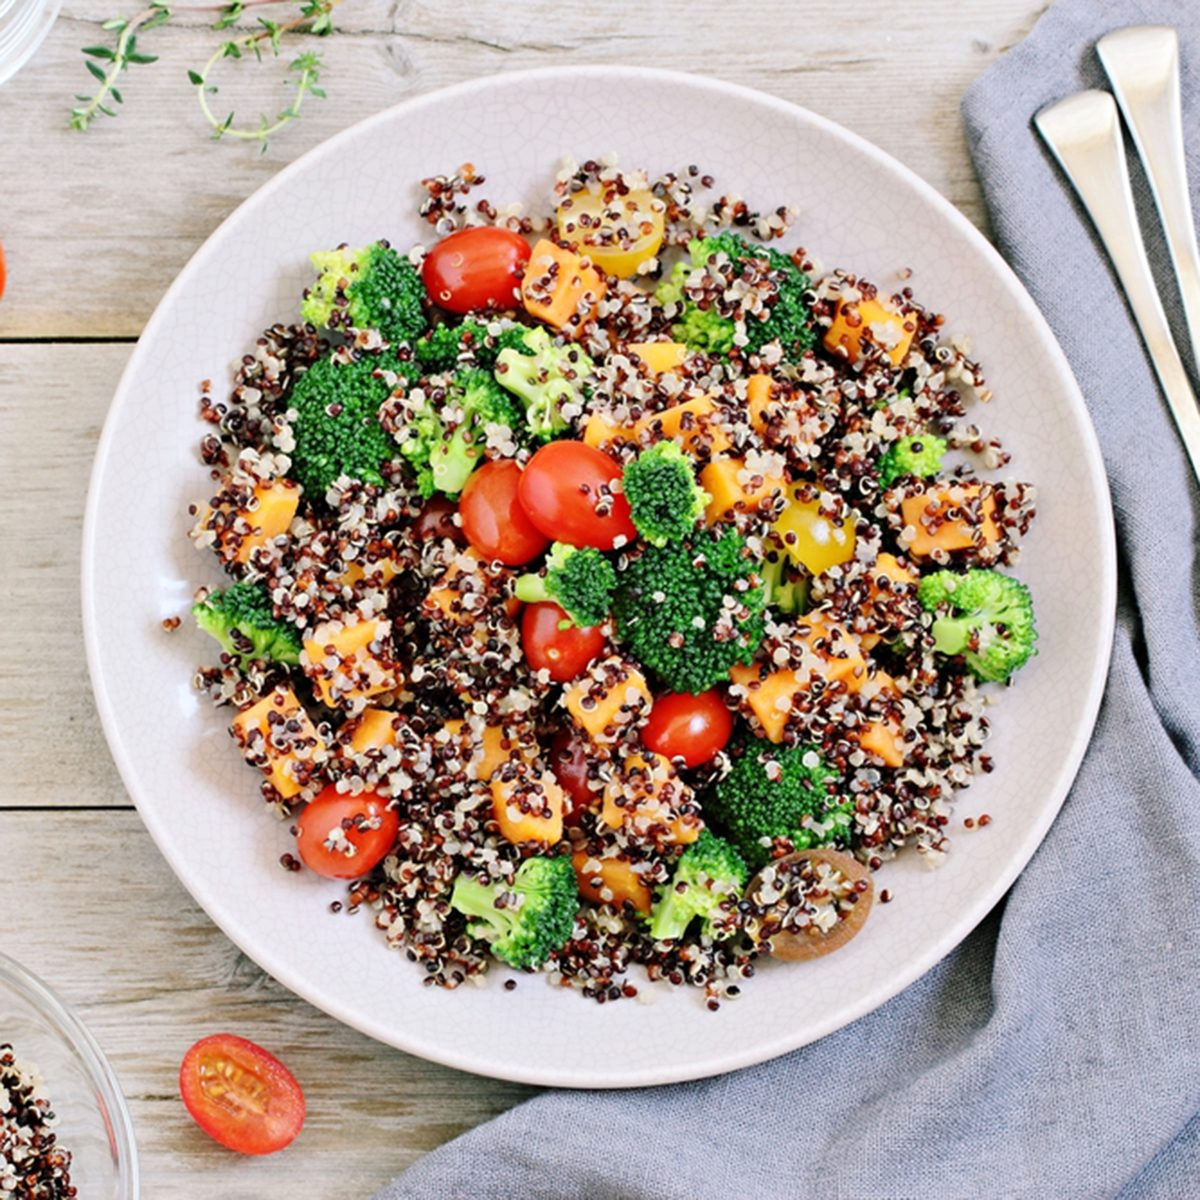 Quinoa salad with broccoli, sweet potatoes and tomatoes on a rustic wooden table. Three-color quinoa salad. Superfood and healthy eating concept. ; Shutterstock ID 380364796; Job (TFH, TOH, RD, BNB, CWM, CM): TOH